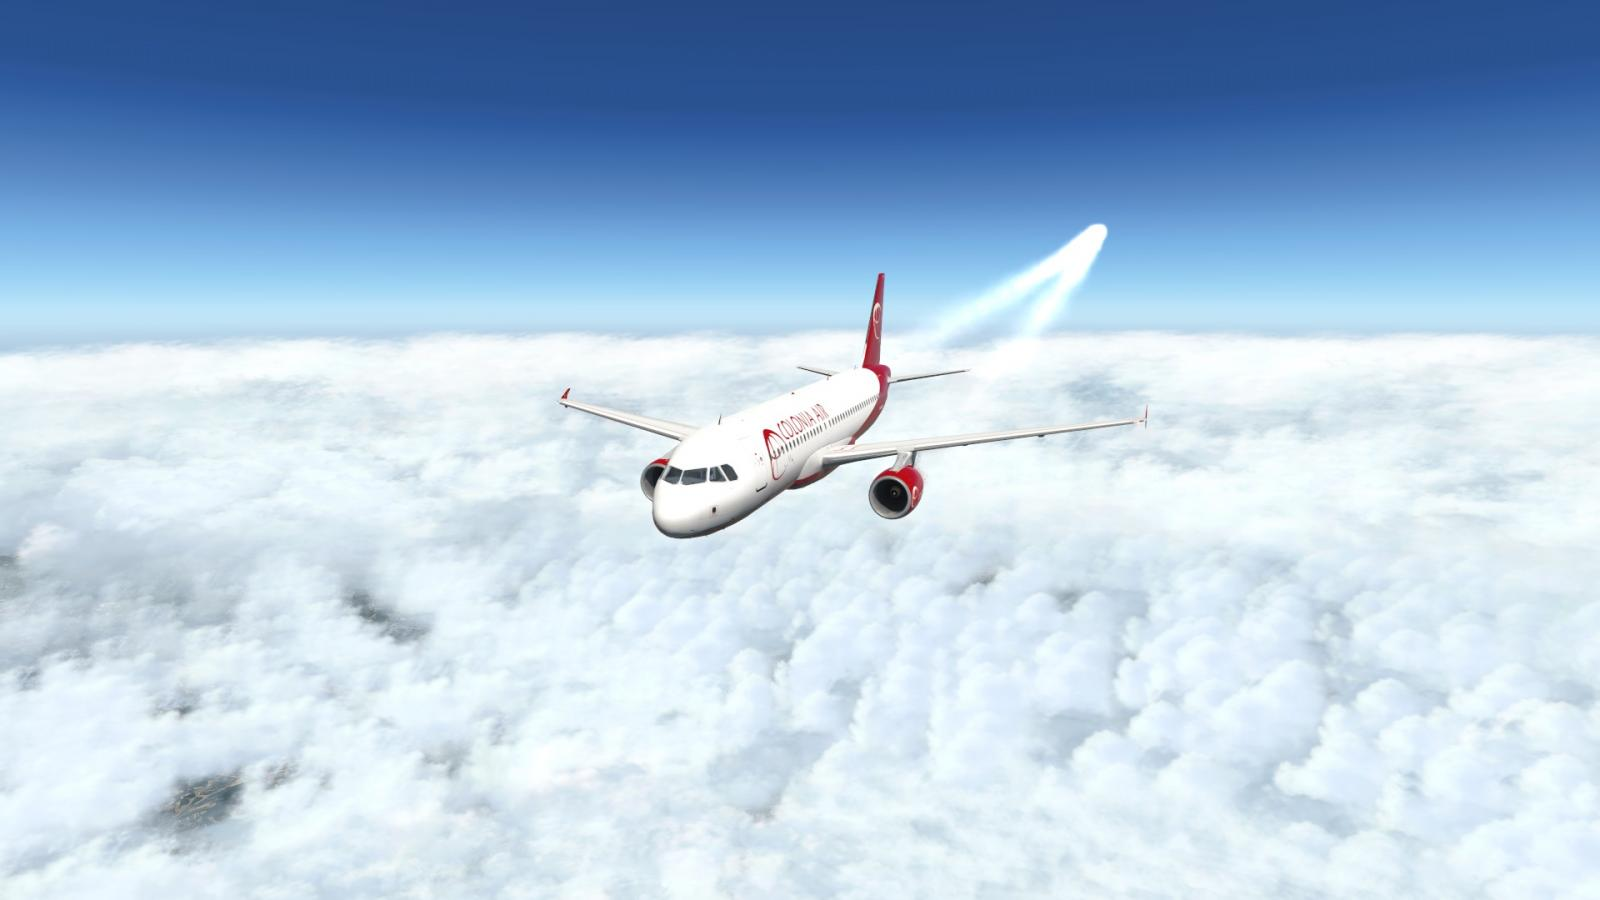 Old Contrails In 11 30 - XP11 beta - X-Plane Org Forum